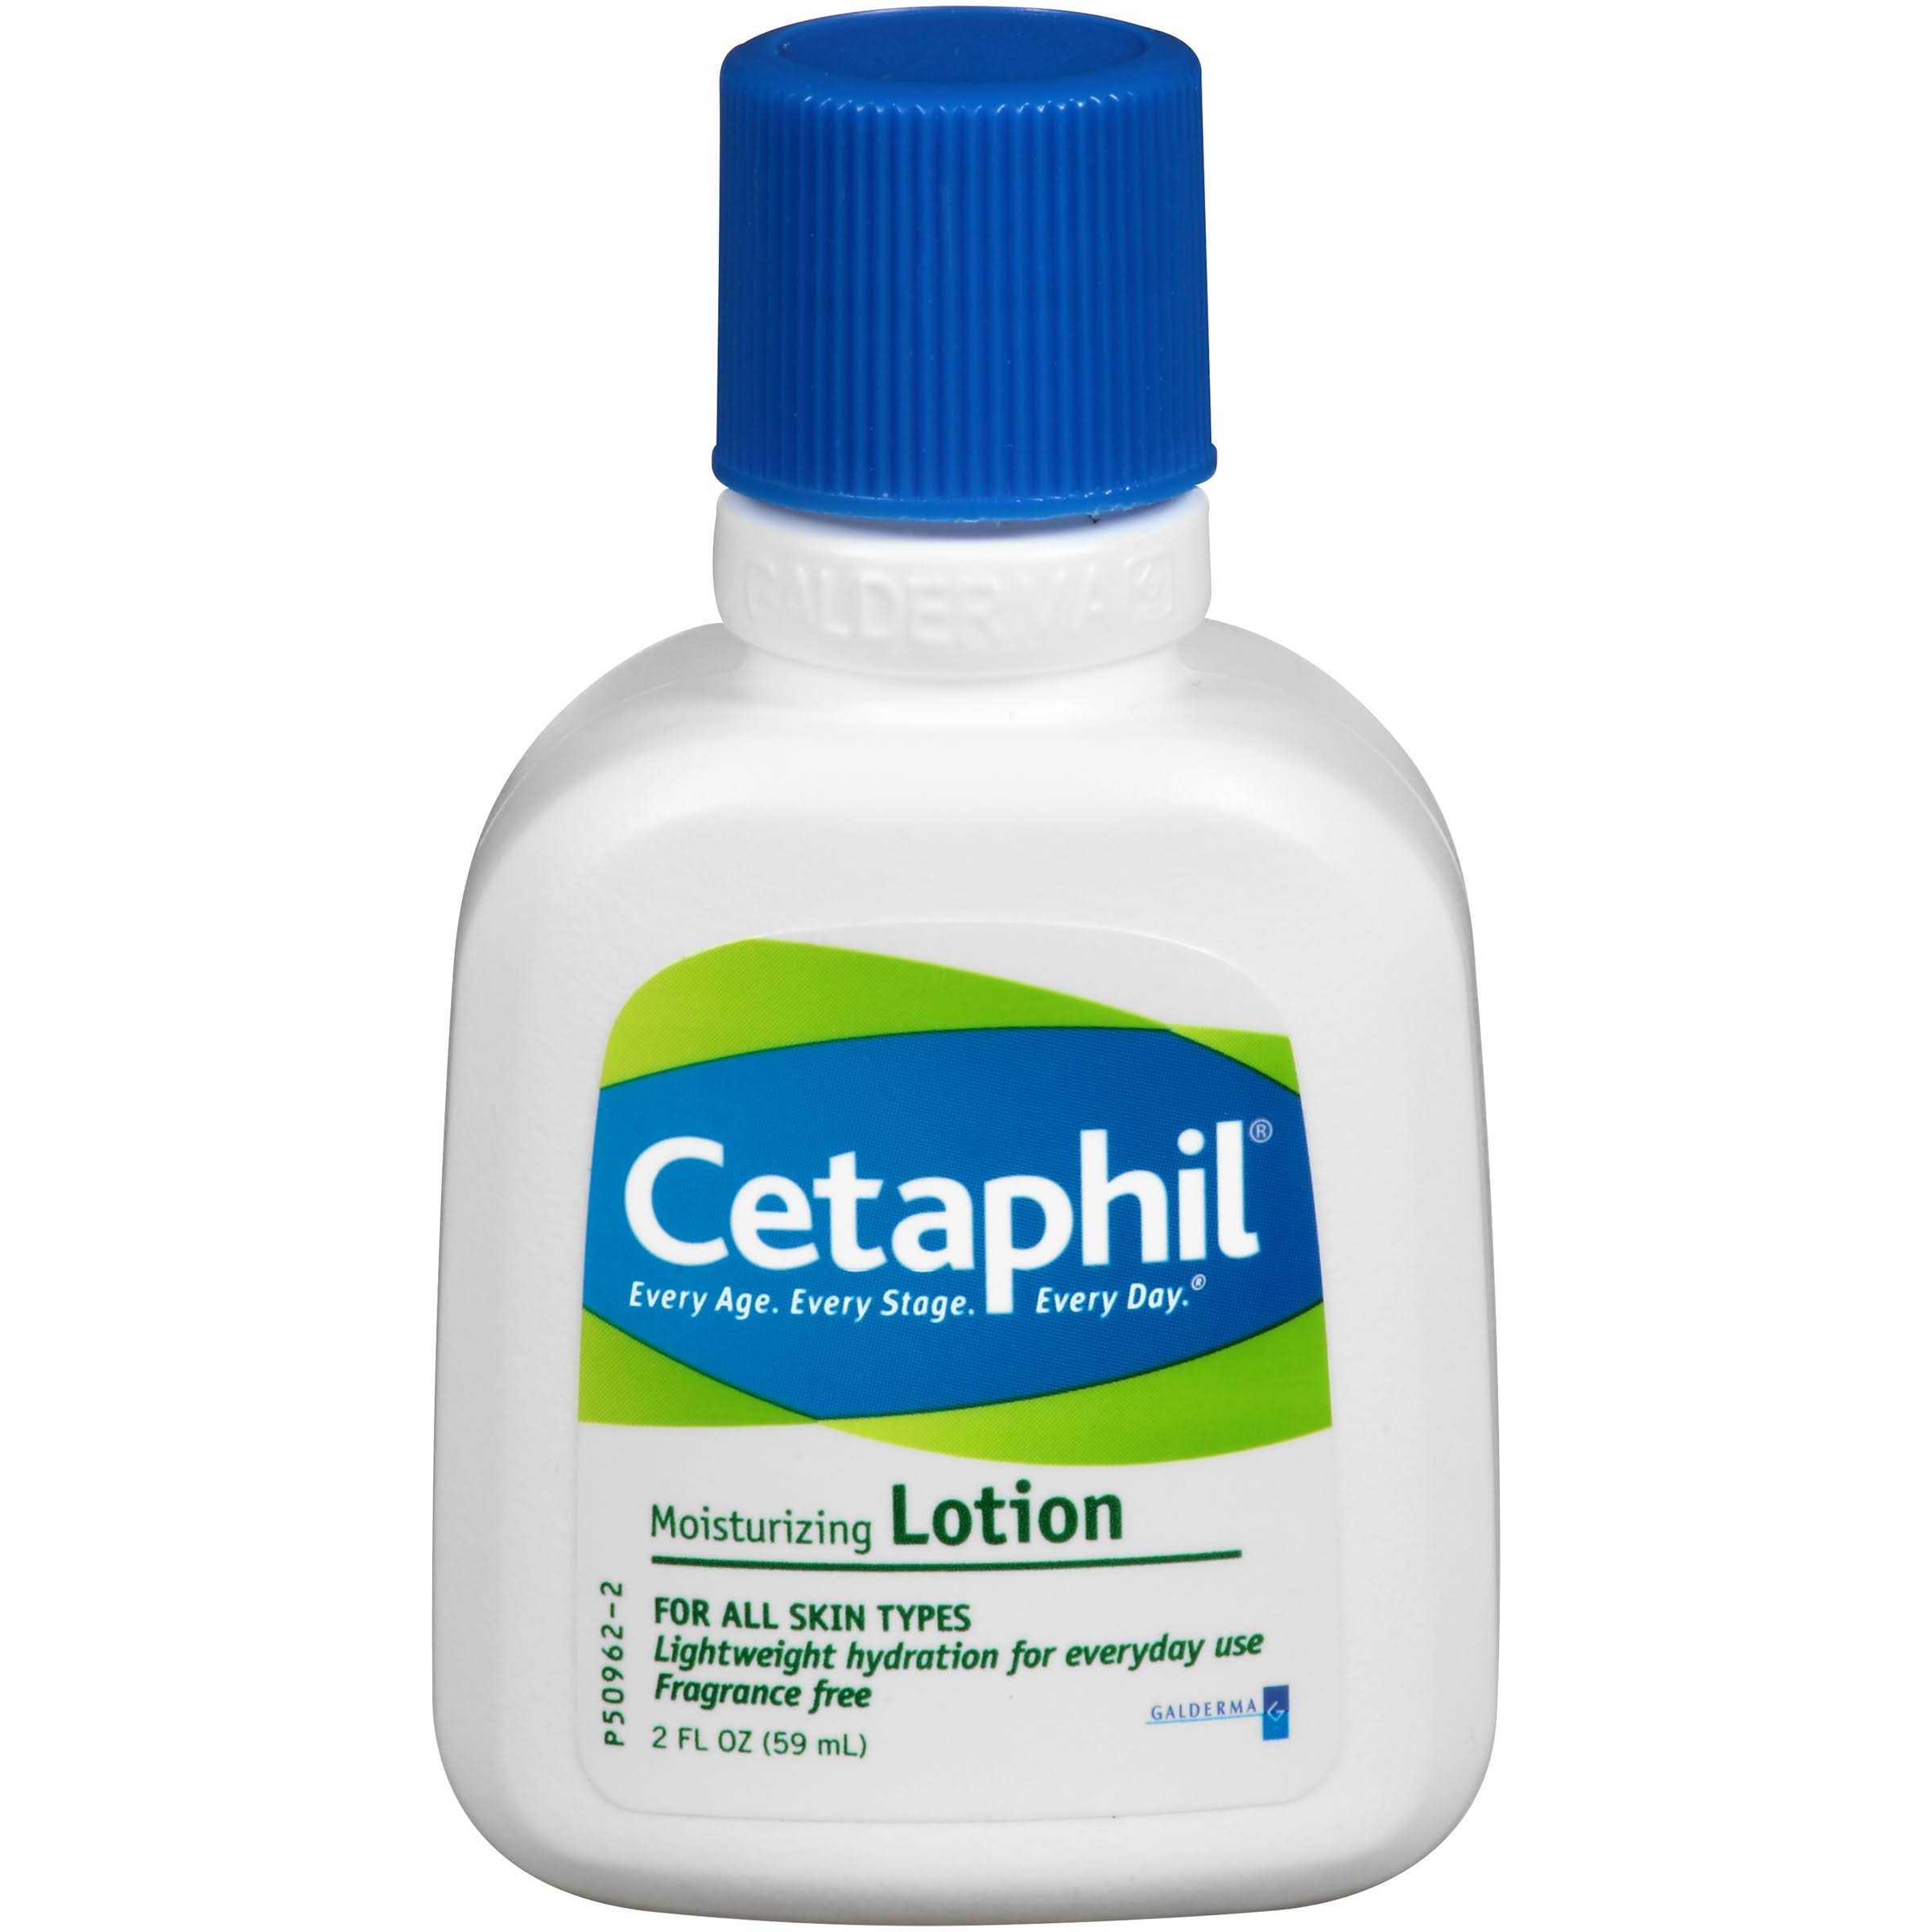 Cetaphil Lotion - 59ml